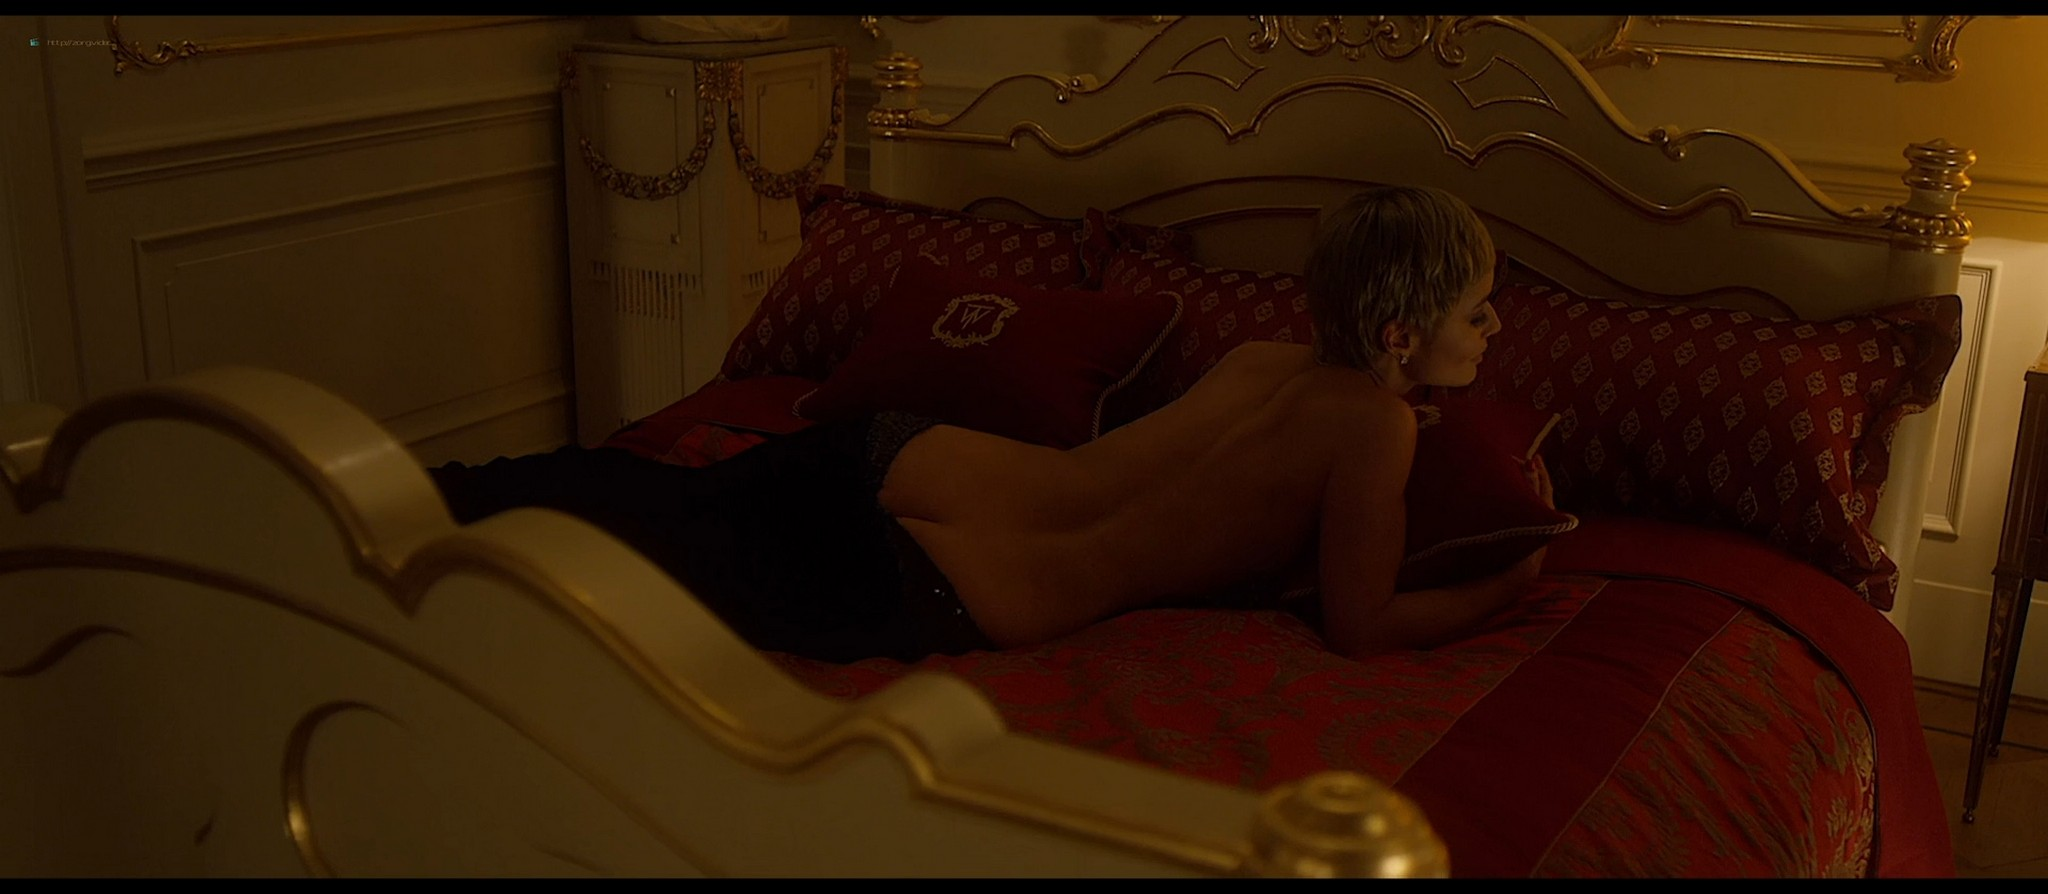 Bérénice Marlohe nude Jaime Ray Newman sexy Owee Rae butt naked - Valley of the Gods (2019) HD 1080p BluRay (10)